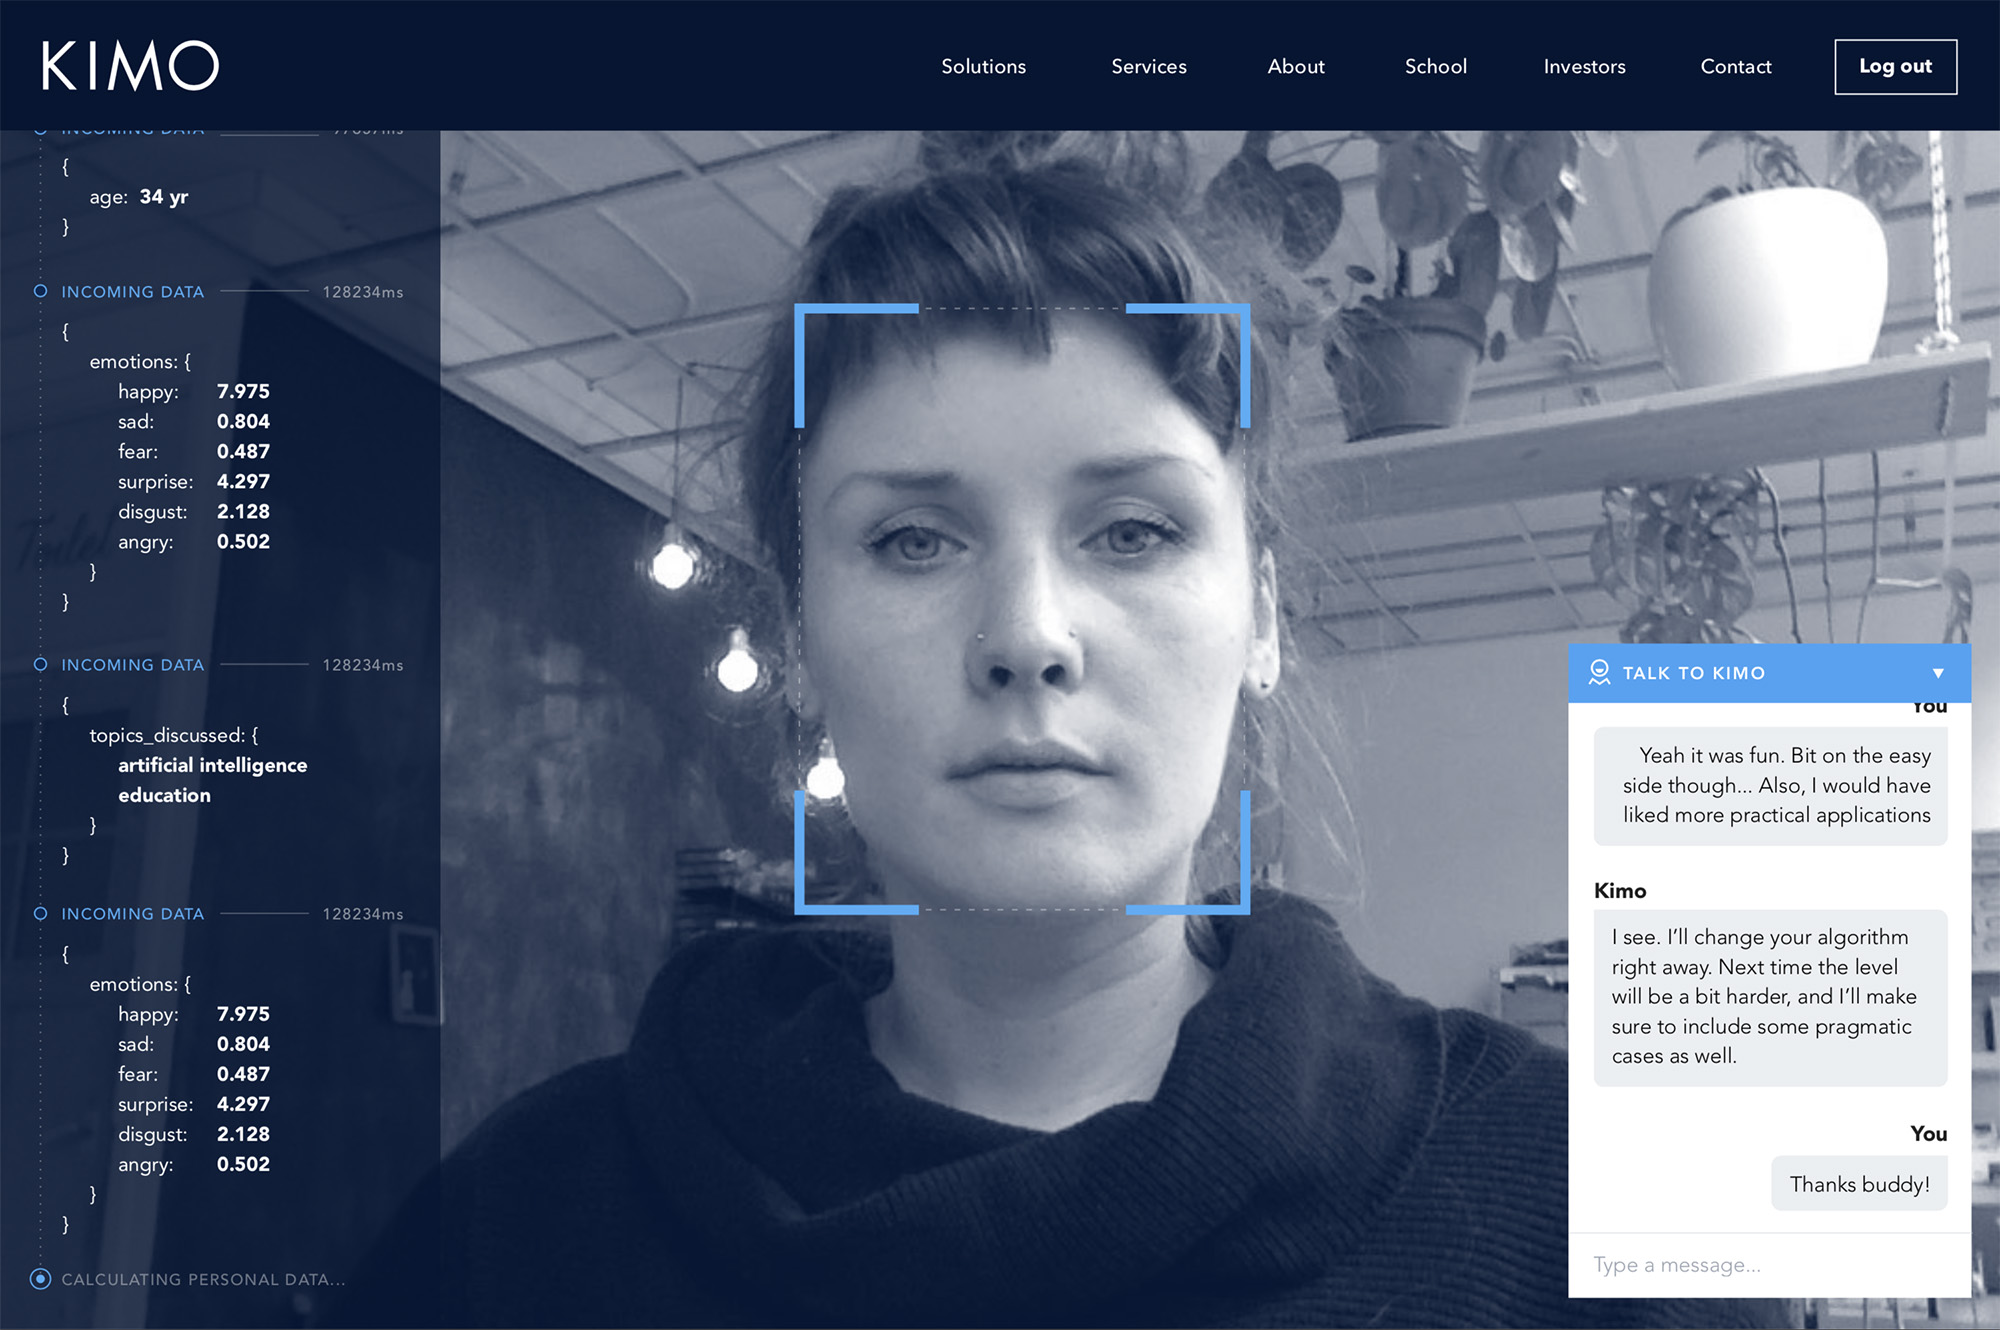 A demo that showcases the system behind Kimo. Through realtime object recognition and facial recognition via the webcam Kimo gets to know you a little bit.